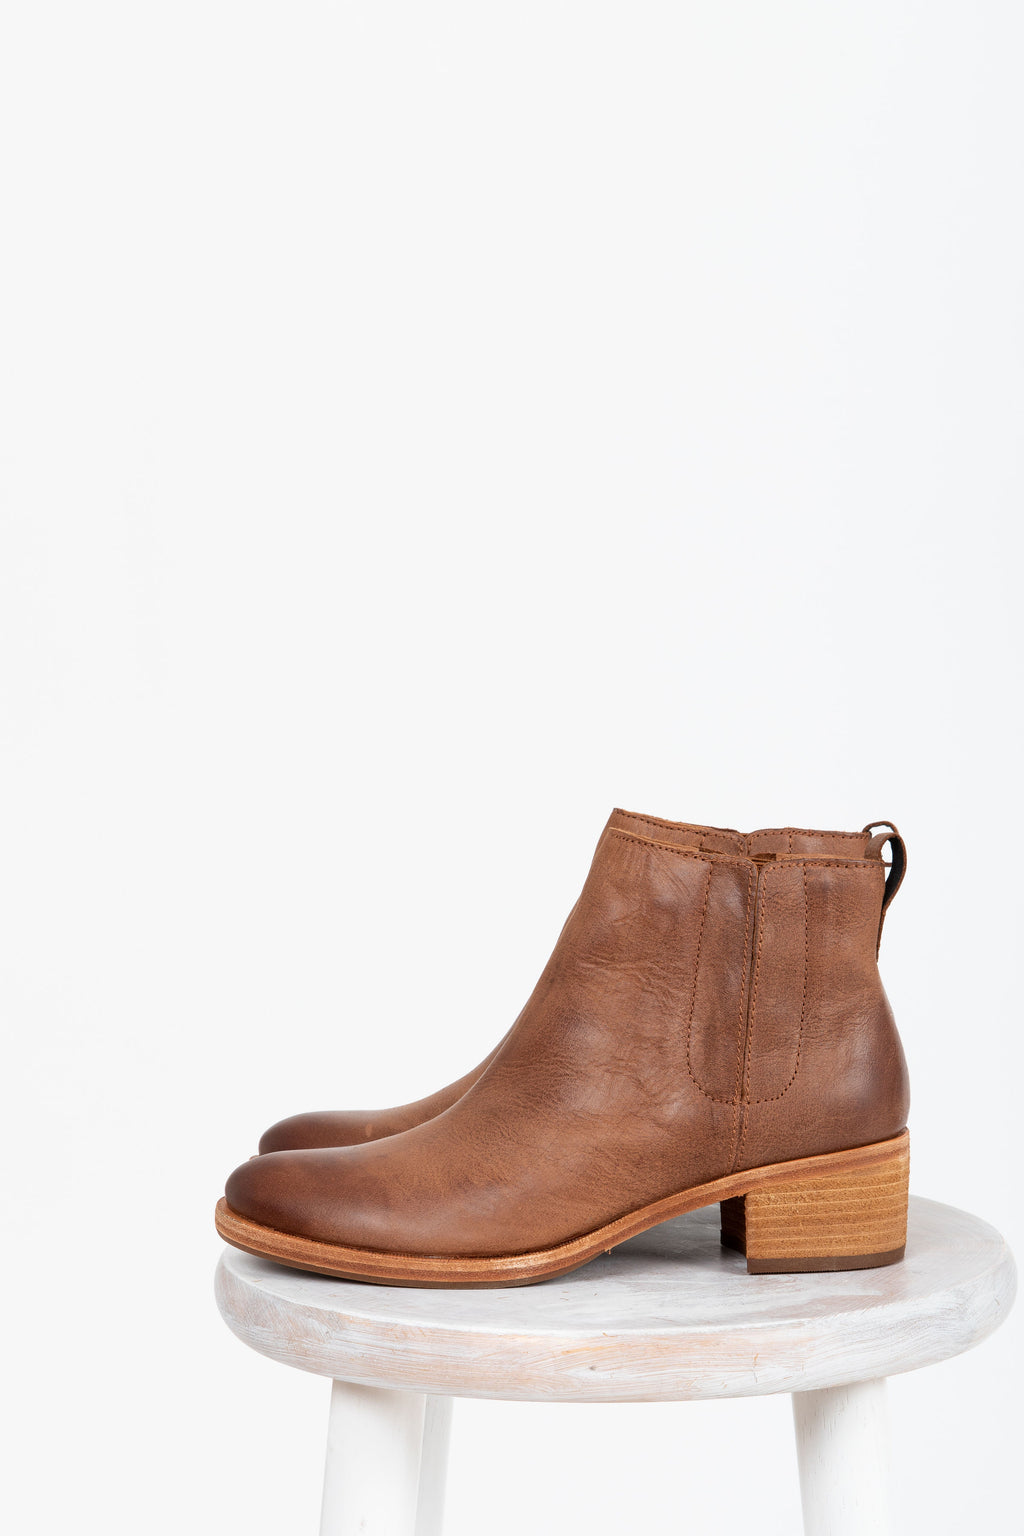 Korkease: Mindo Boot in Brown